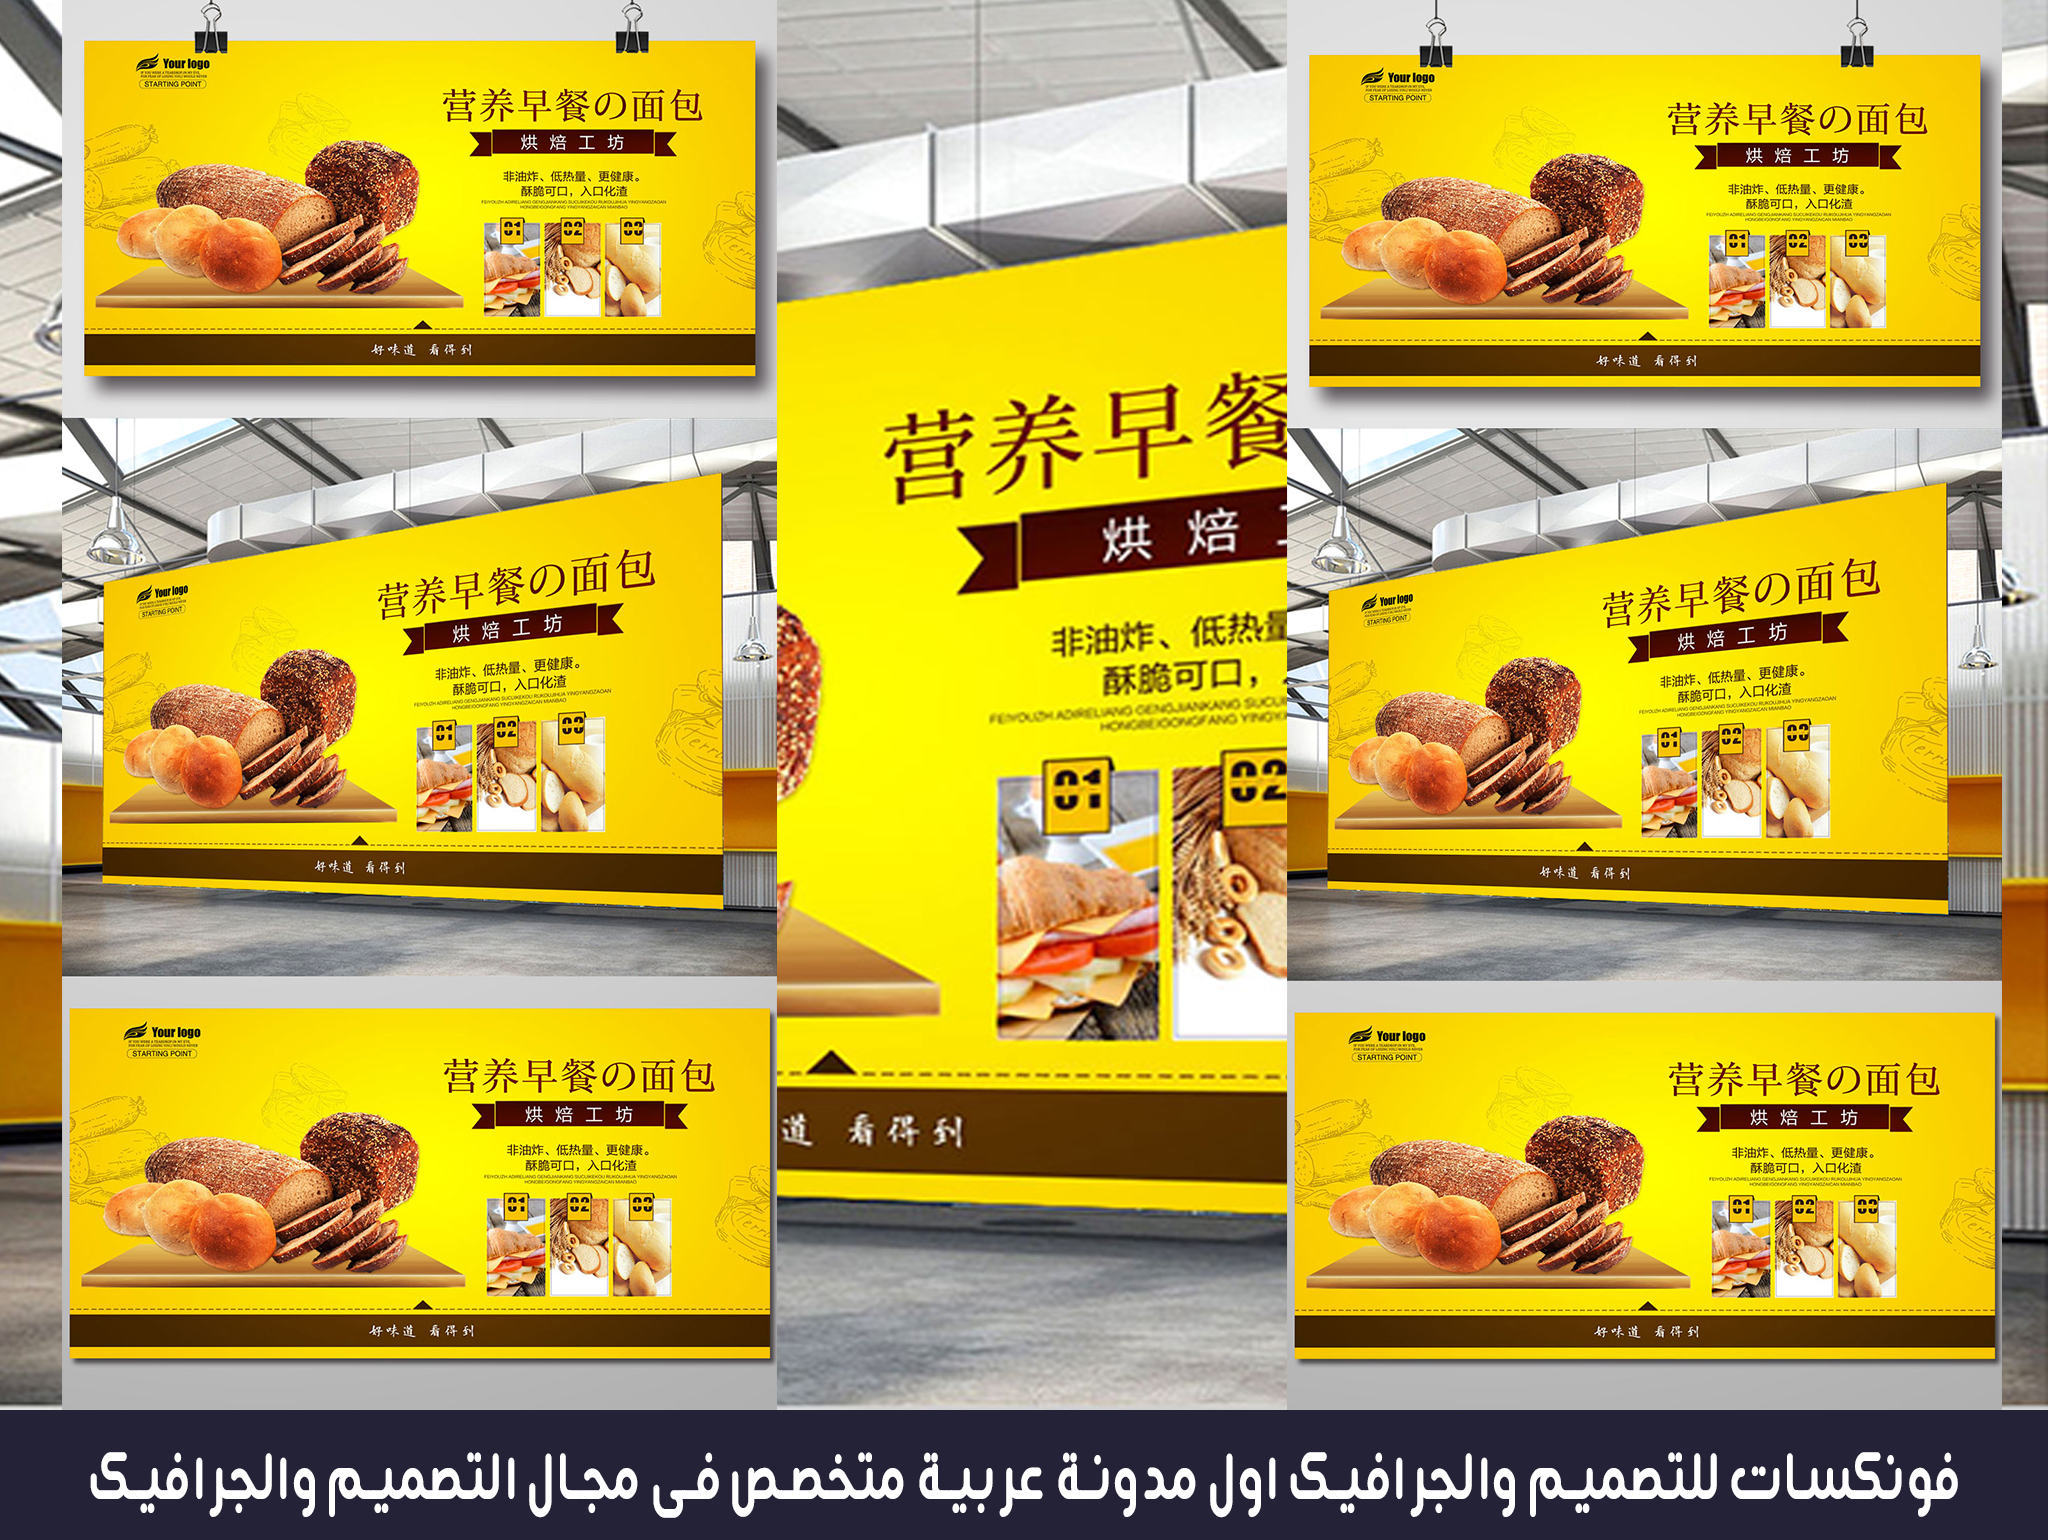 PSD file for web banner and print for bakery and bread products